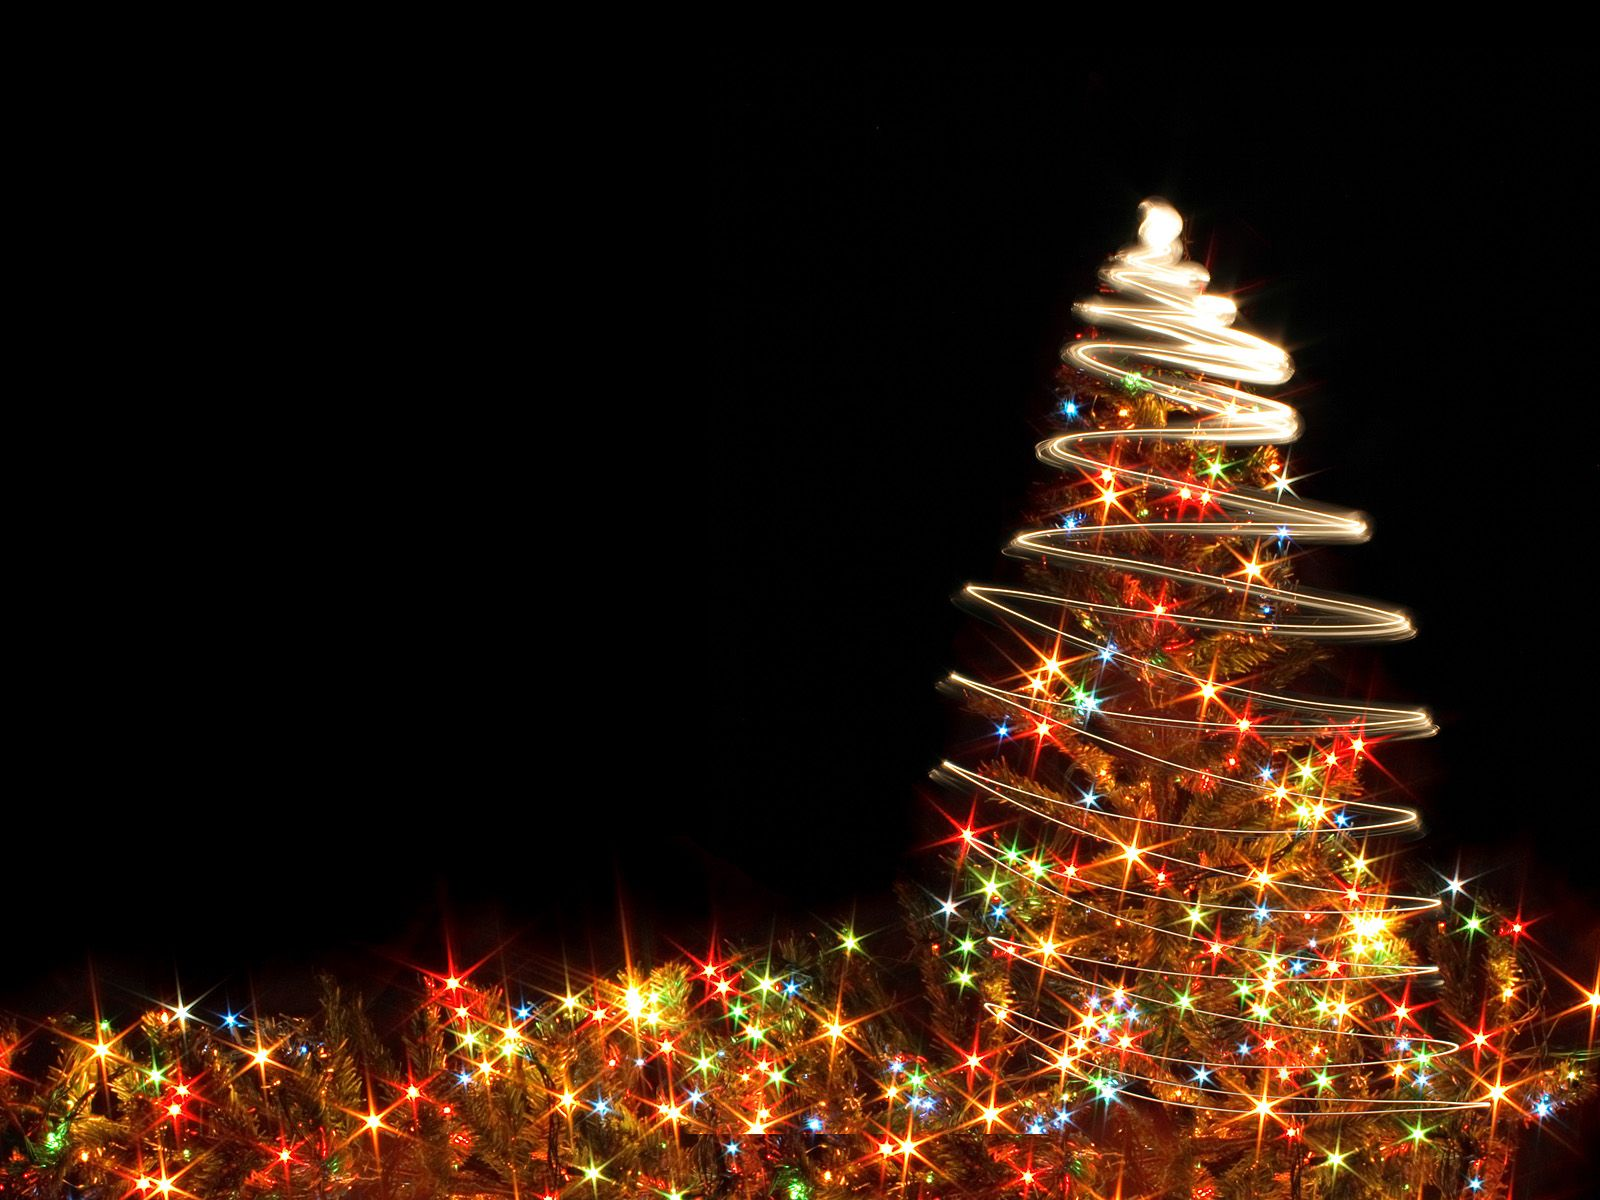 Christmas Lights Wallpaper Best Desktop HD Wallpaper